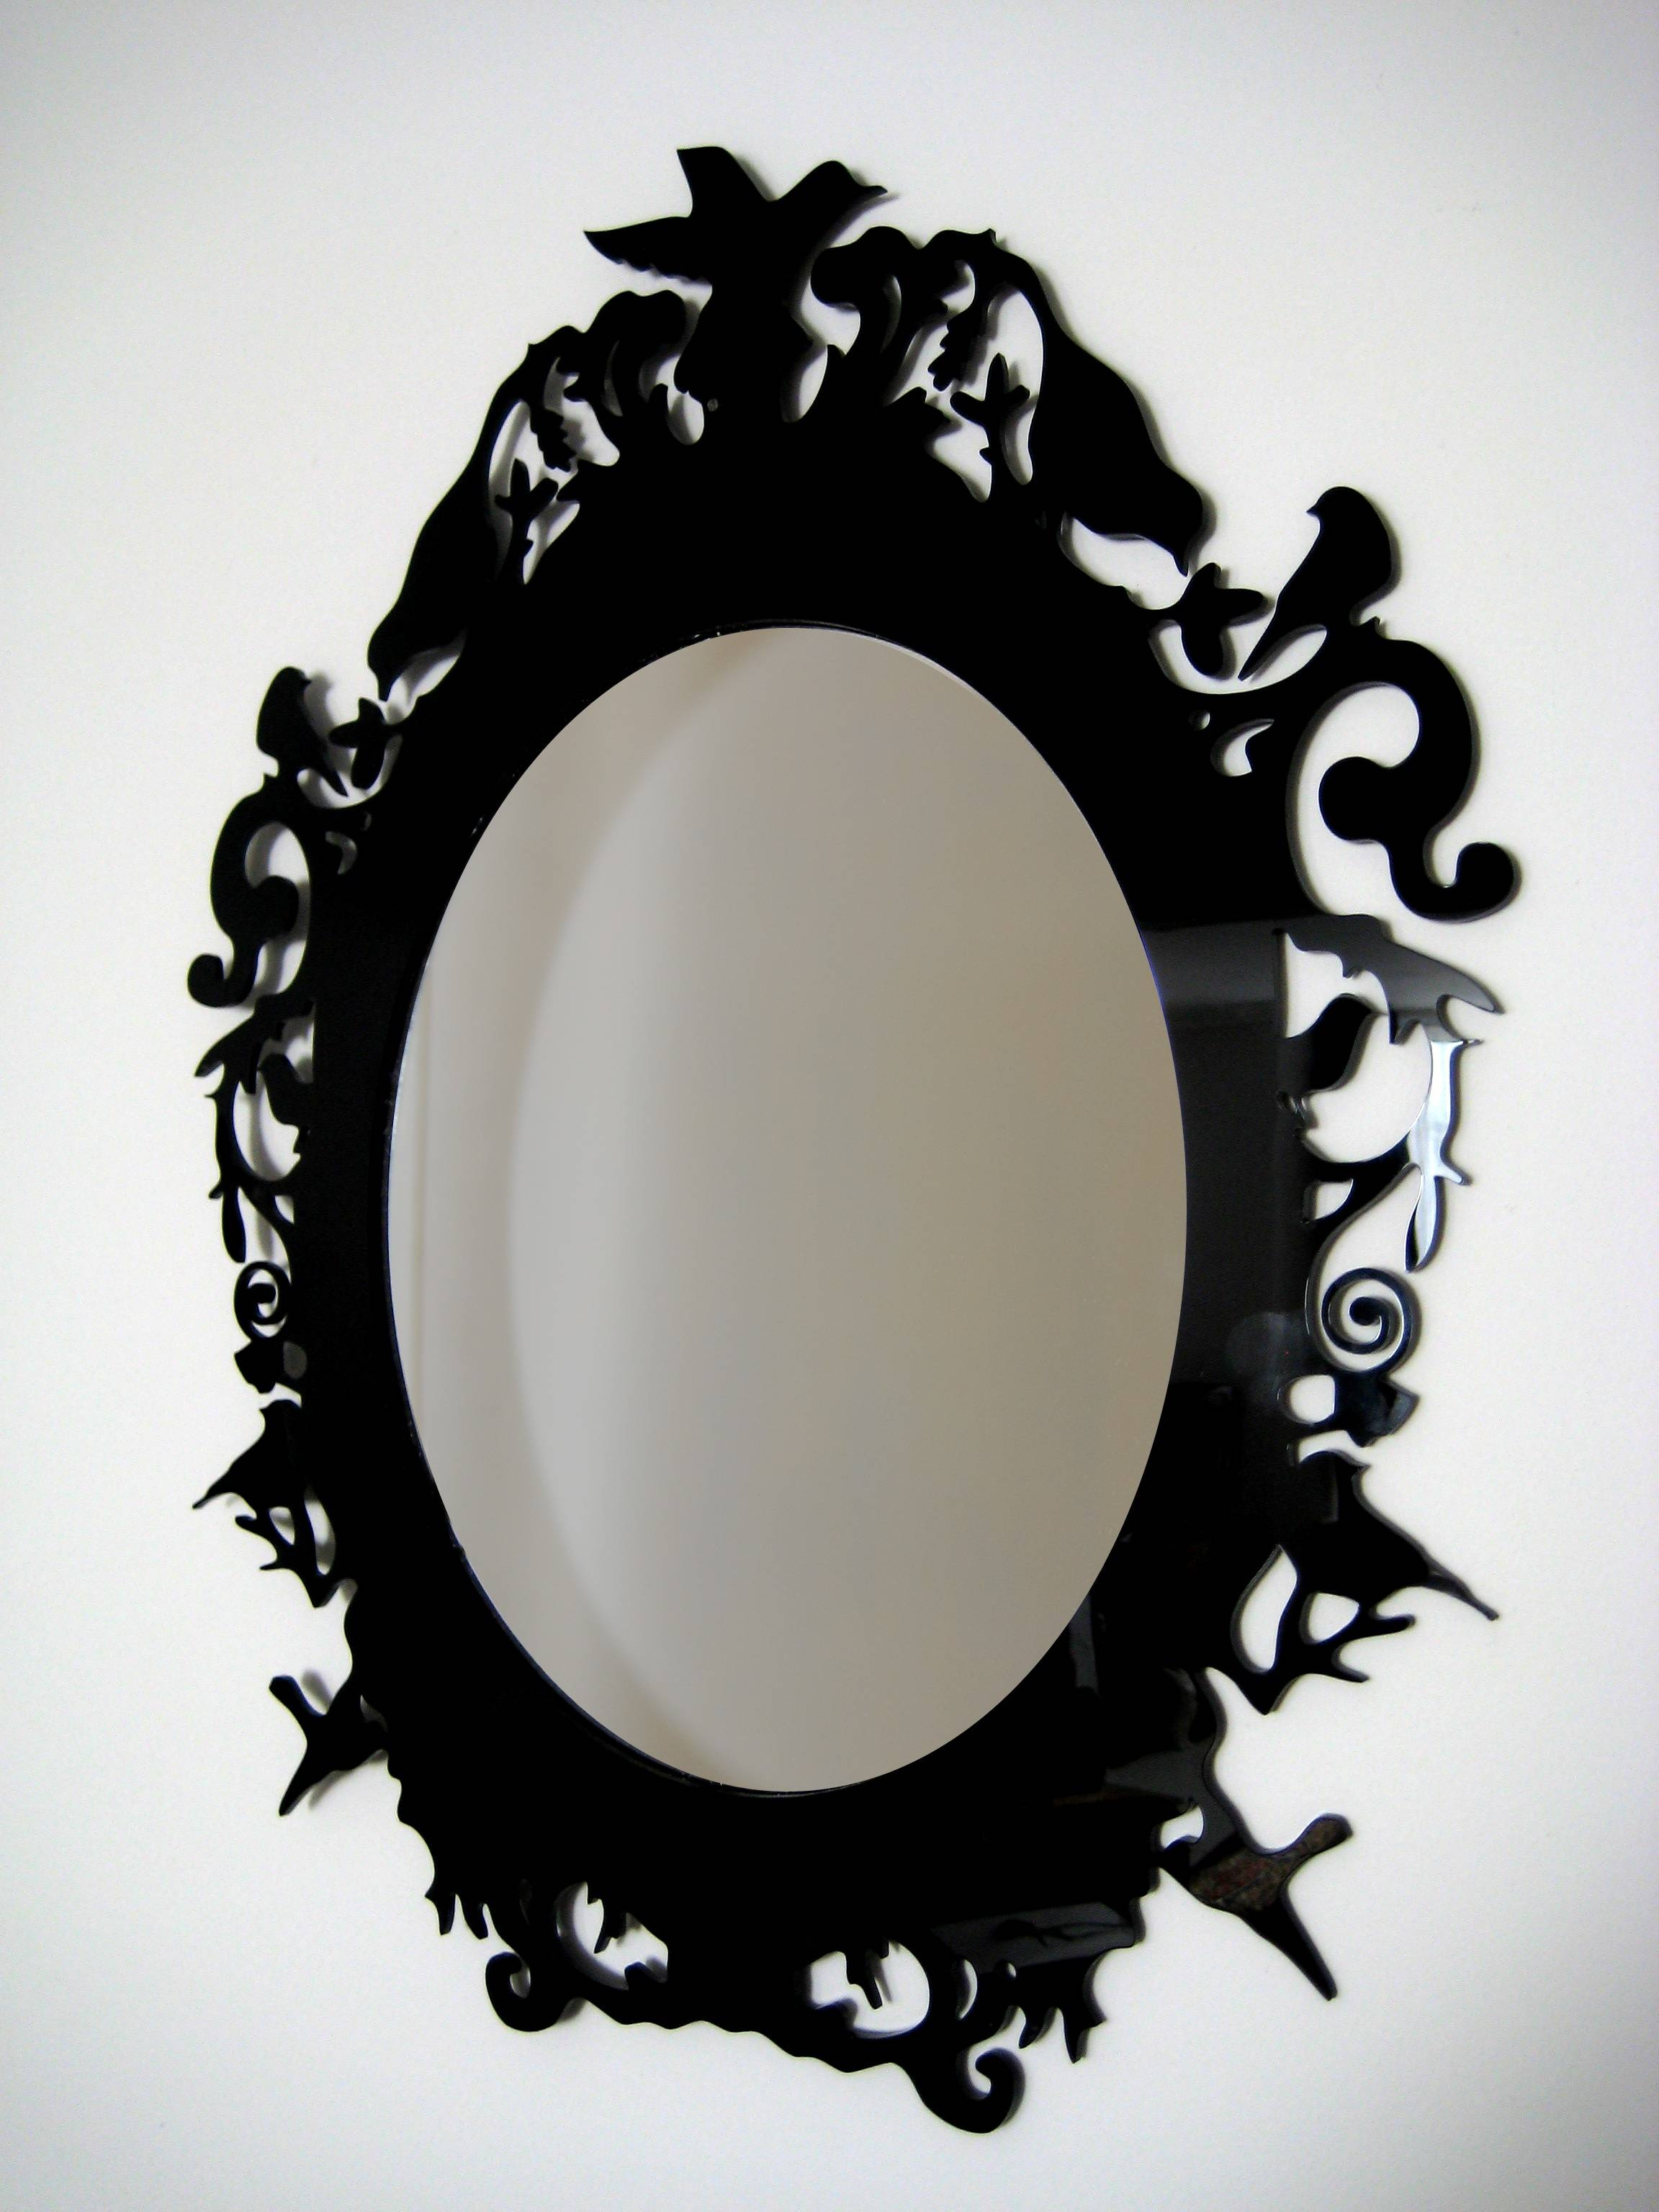 Bathroom: Astounding Baroque Mirror With Unique Frame For Bathroom inside Gothic Style Mirrors (Image 11 of 25)